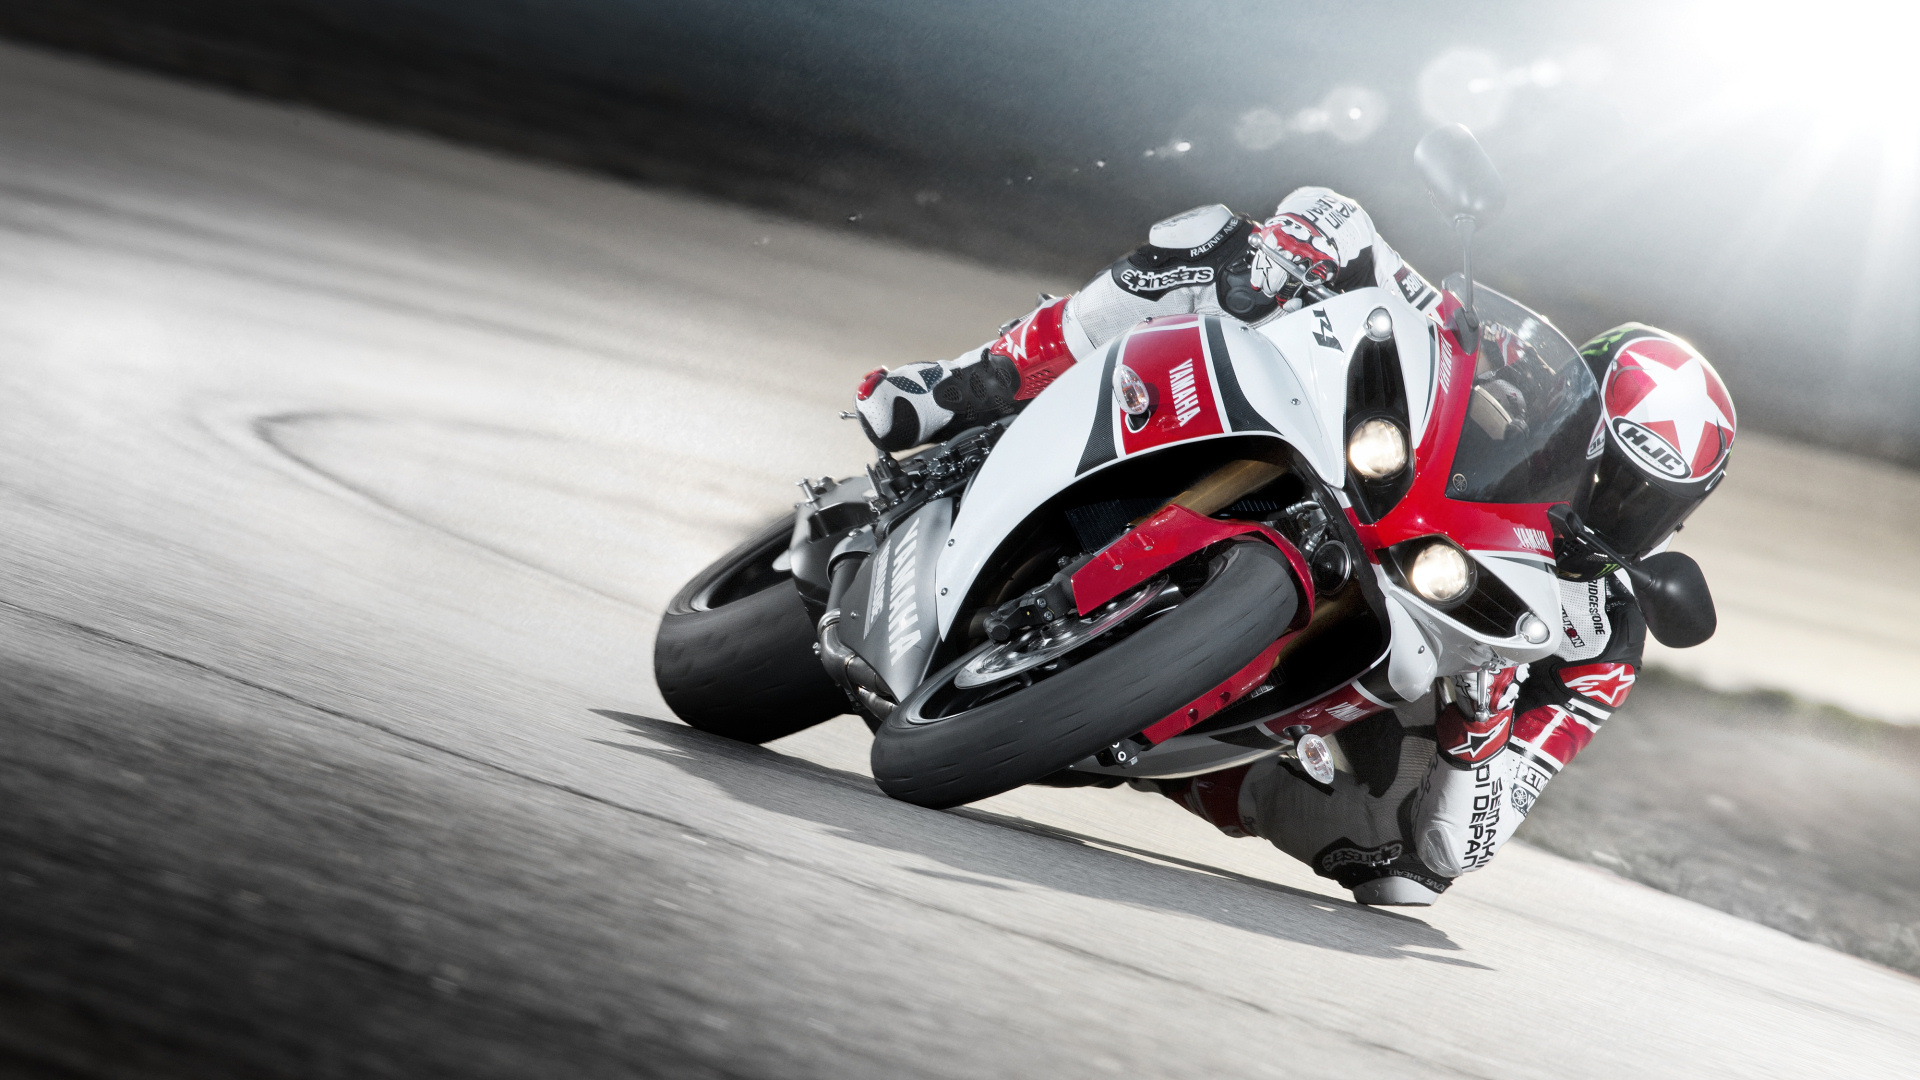 Free Race Car Wallpapers Desktop 1000 Yzf R1 Wgp 50th Anniversary 2012 Sportives